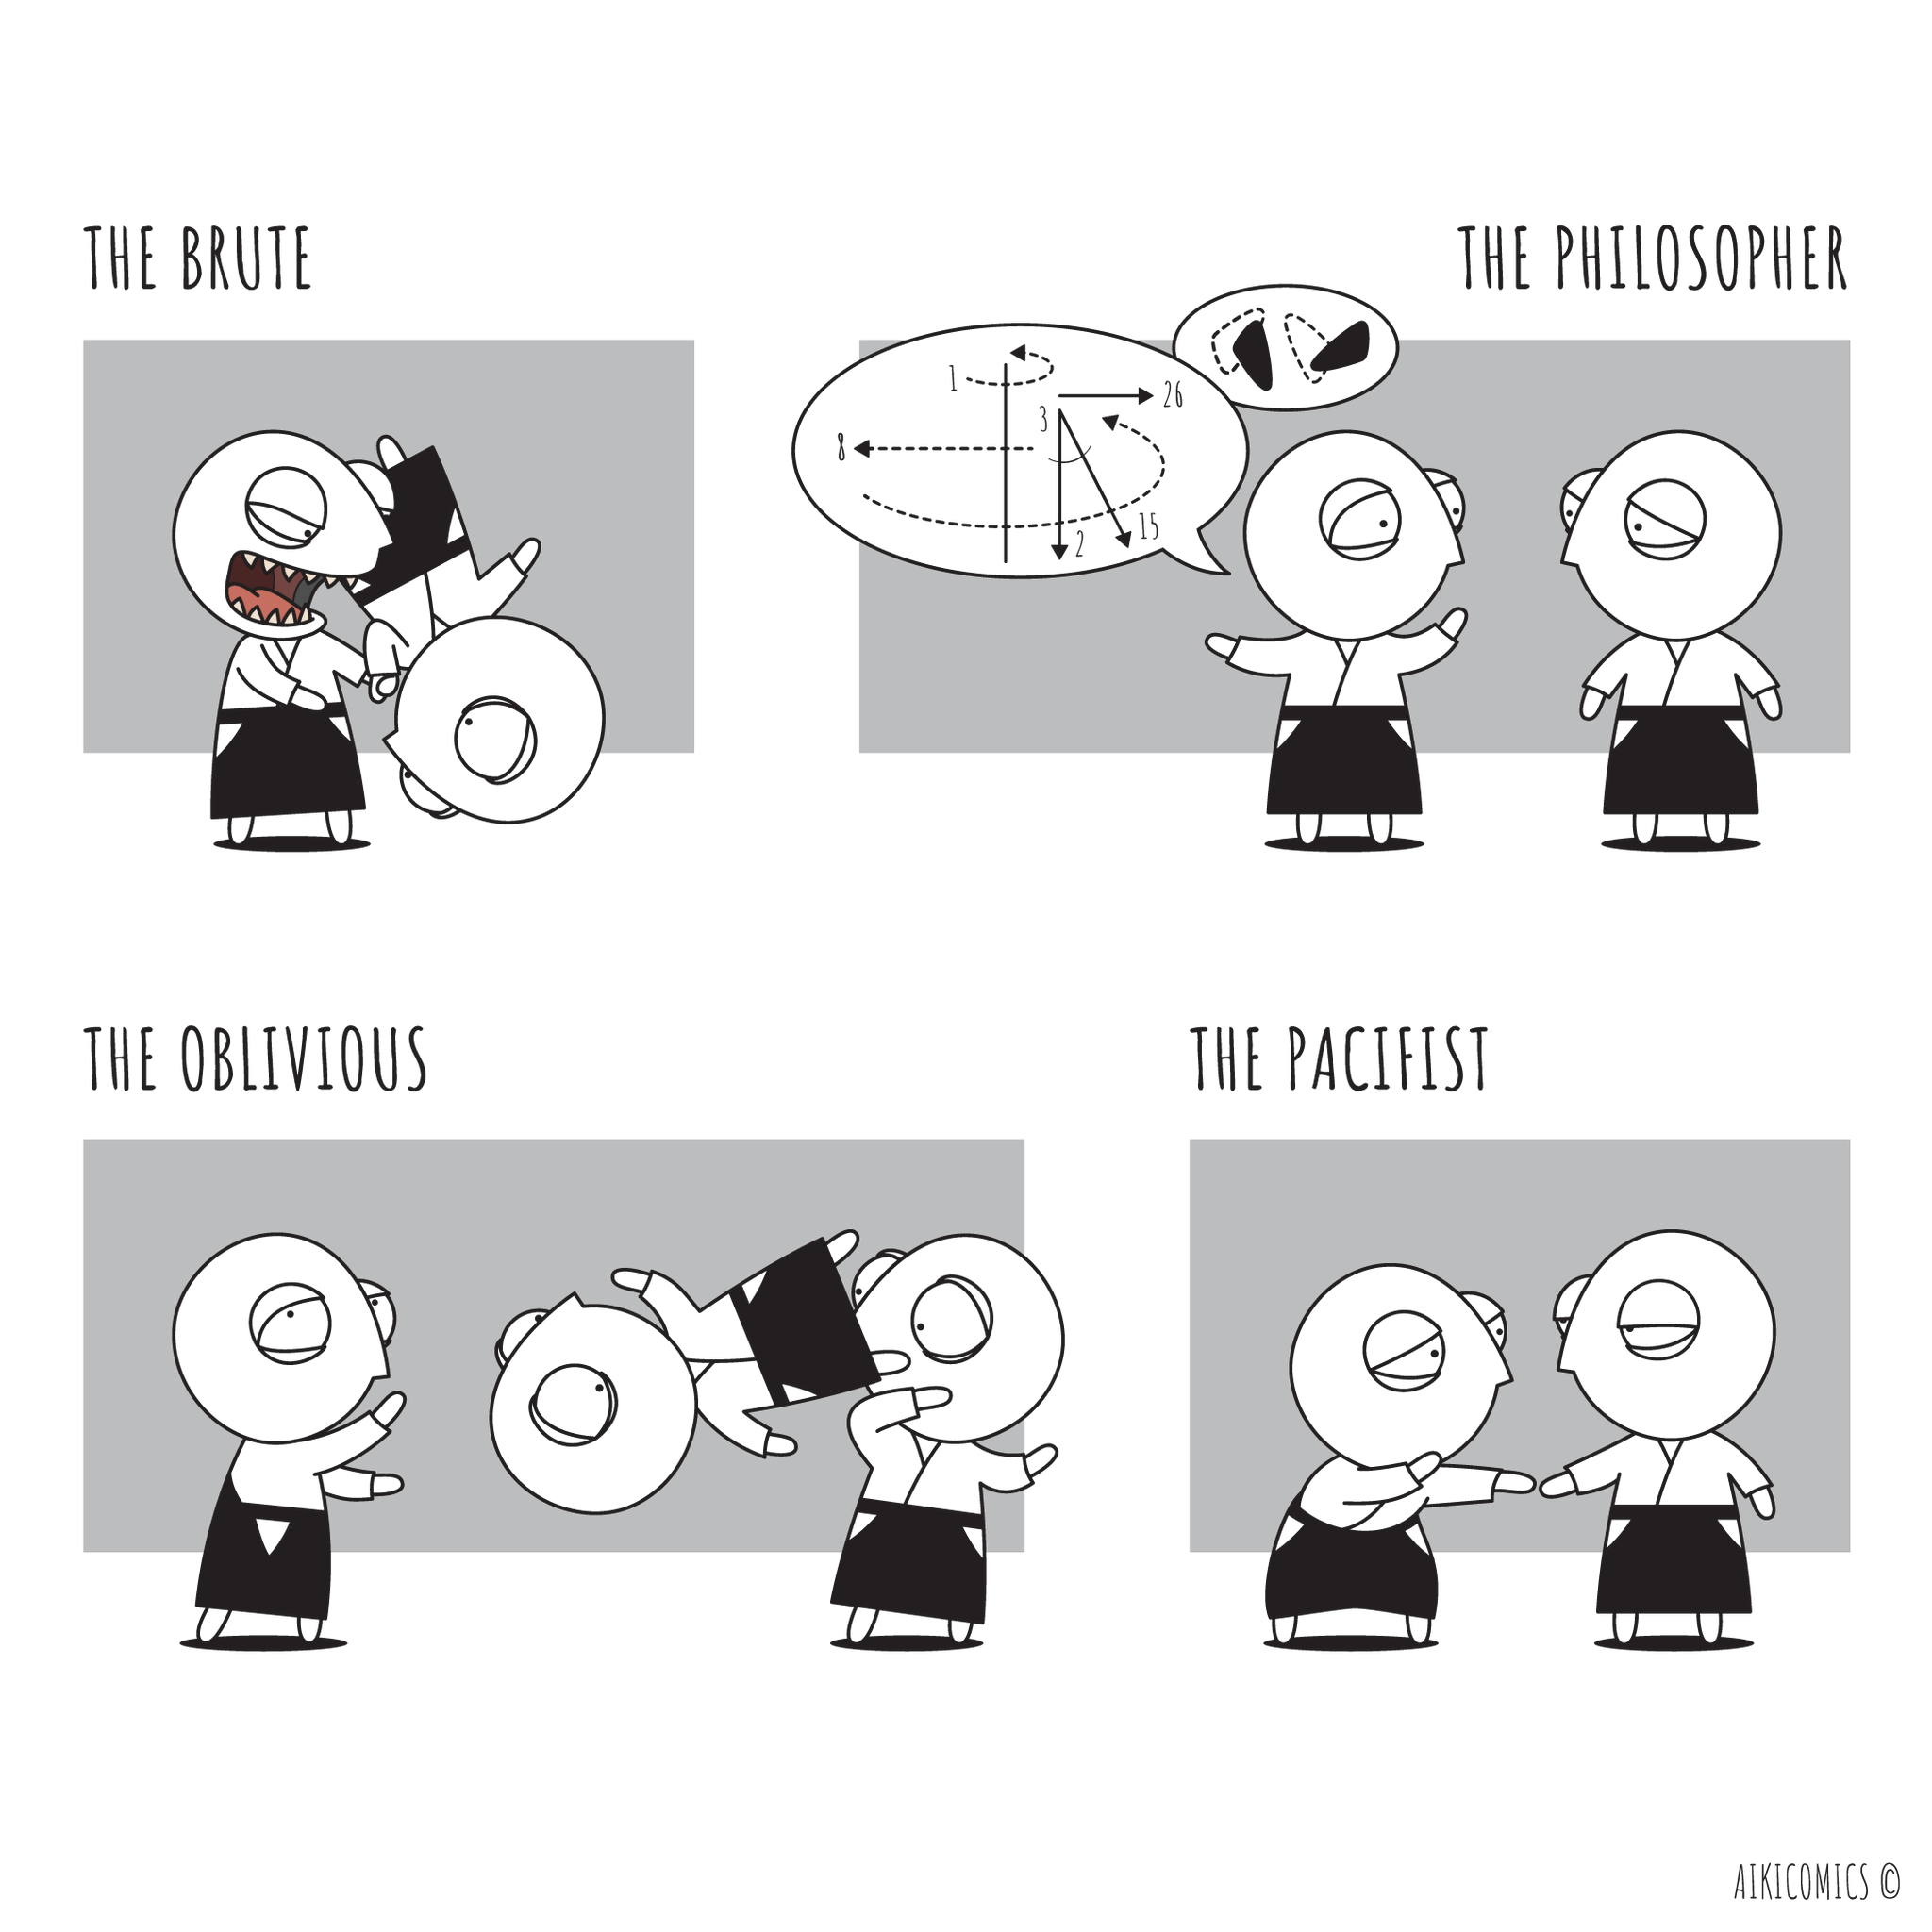 Nage types... Meet the brute, the philosopher, the oblivious and the pacifist.  #aikido #martialarts #comics #cartoon #humor #oritshilon #aikicomics #selfdefense https://t.co/iiFpYlH85q